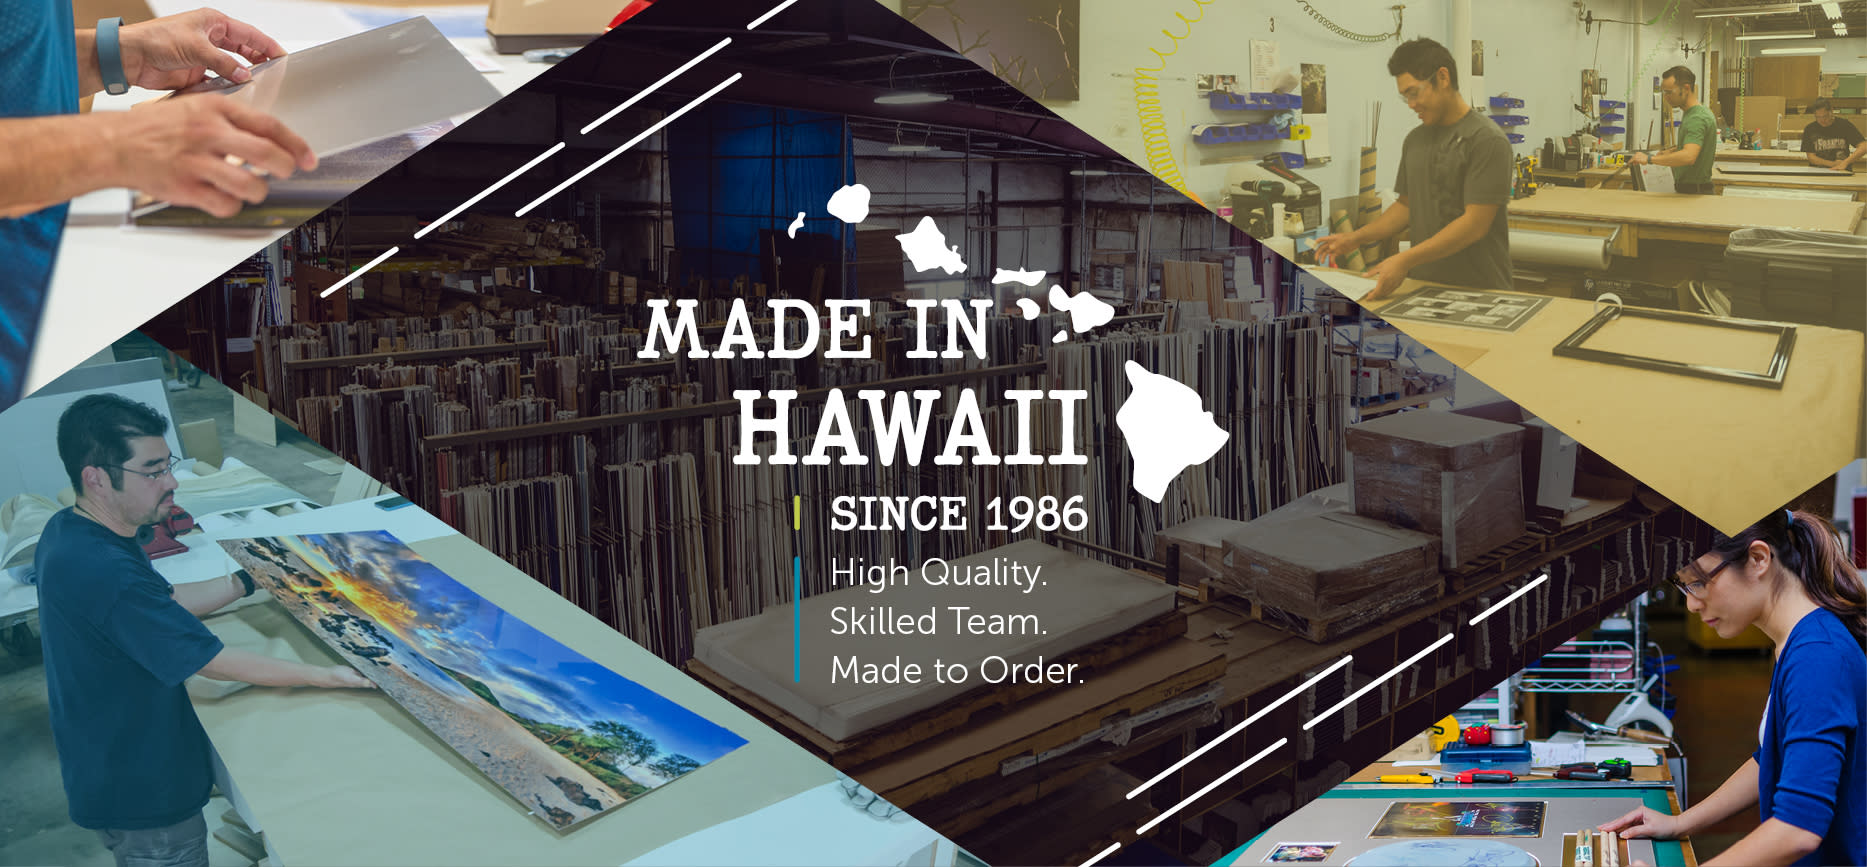 <div class='title'>           Pictures- Plus-Made-In-Hawaii-Video         </div>                 <div class='description'>           Pictures Plus art, framing and printing services, locally made in Hawaii.         </div>